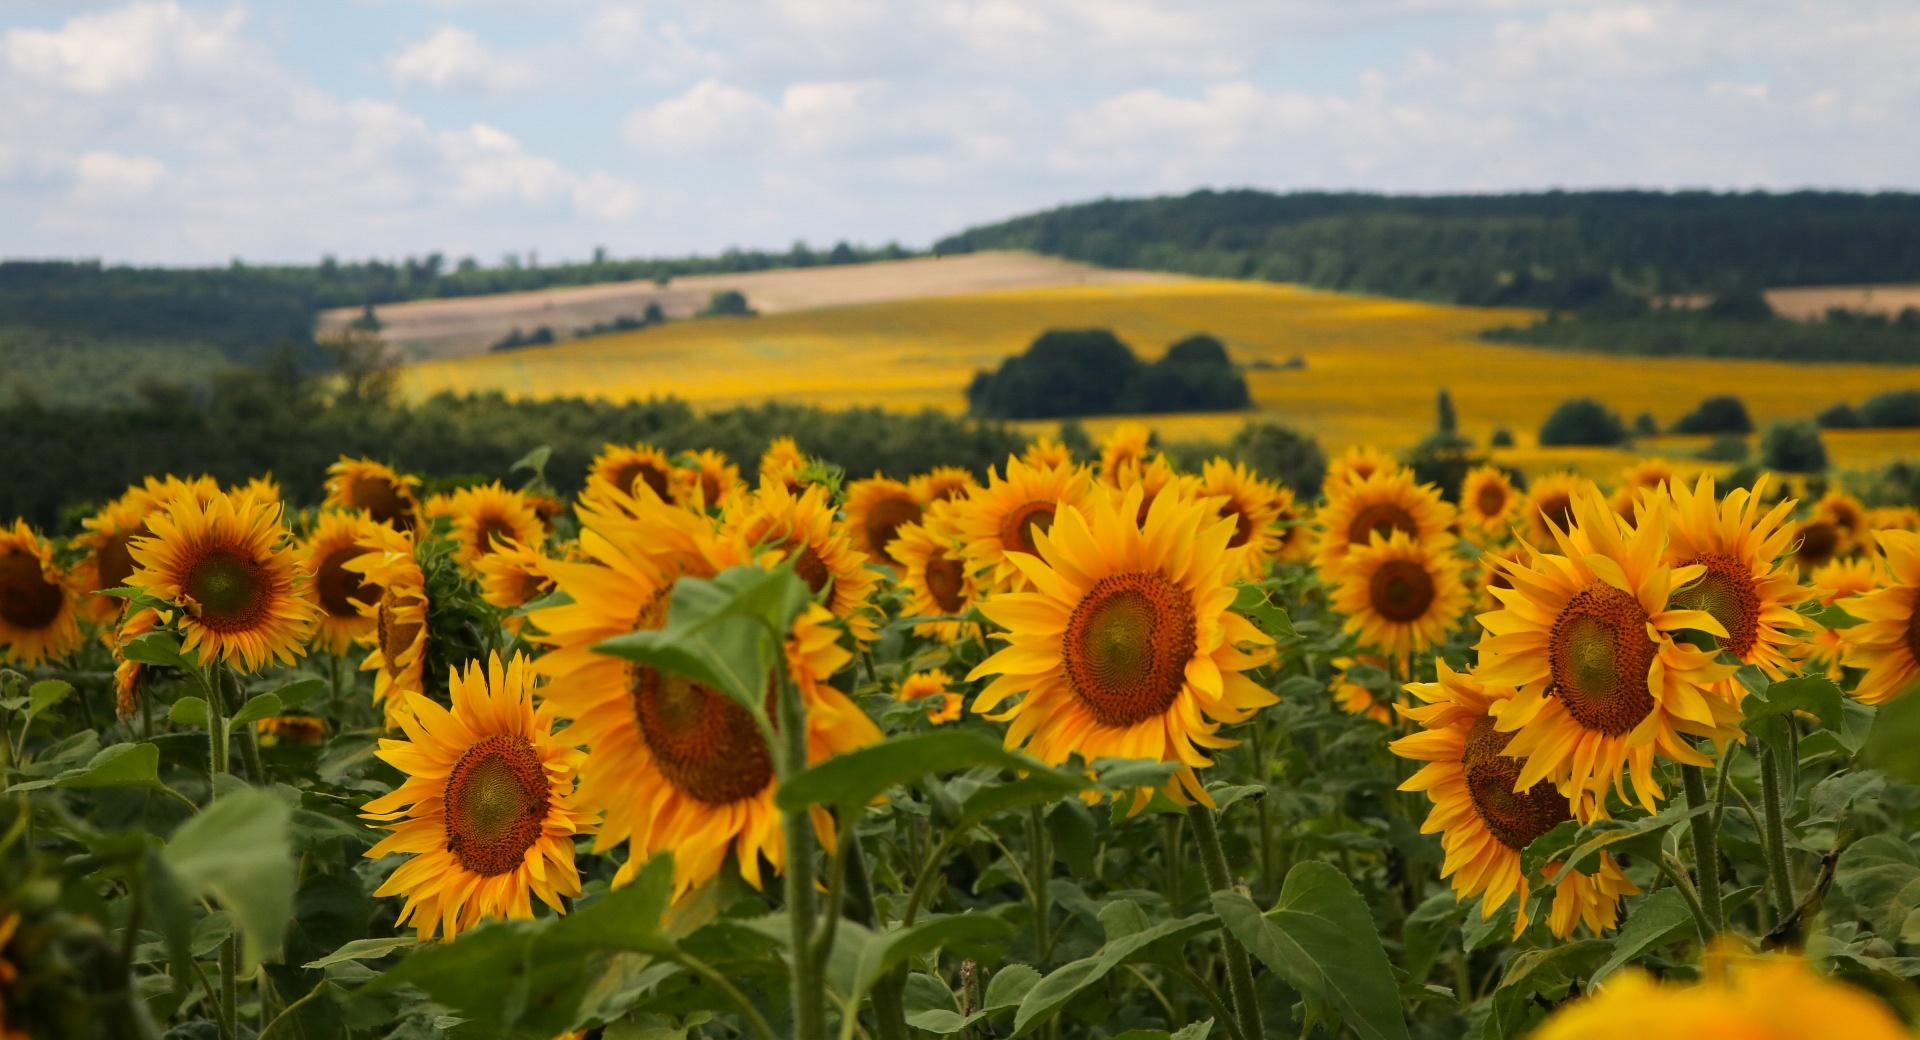 Sunflowers wallpapers HD quality